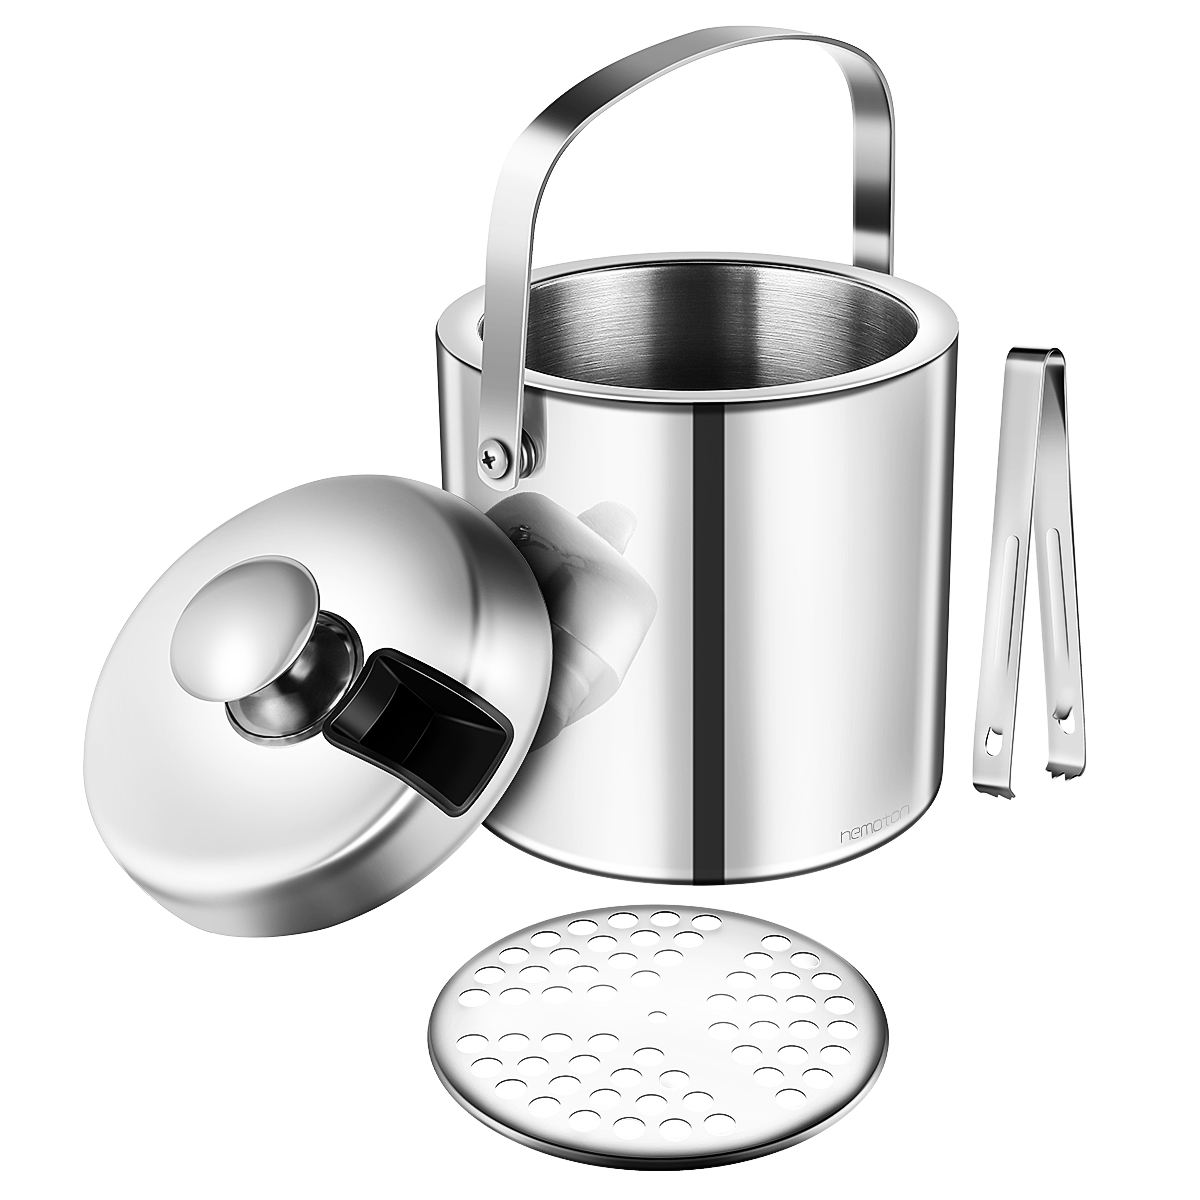 Large 1.3L Insulated Double Walled Stainless Steel Ice Bucket With Tongs And Lid